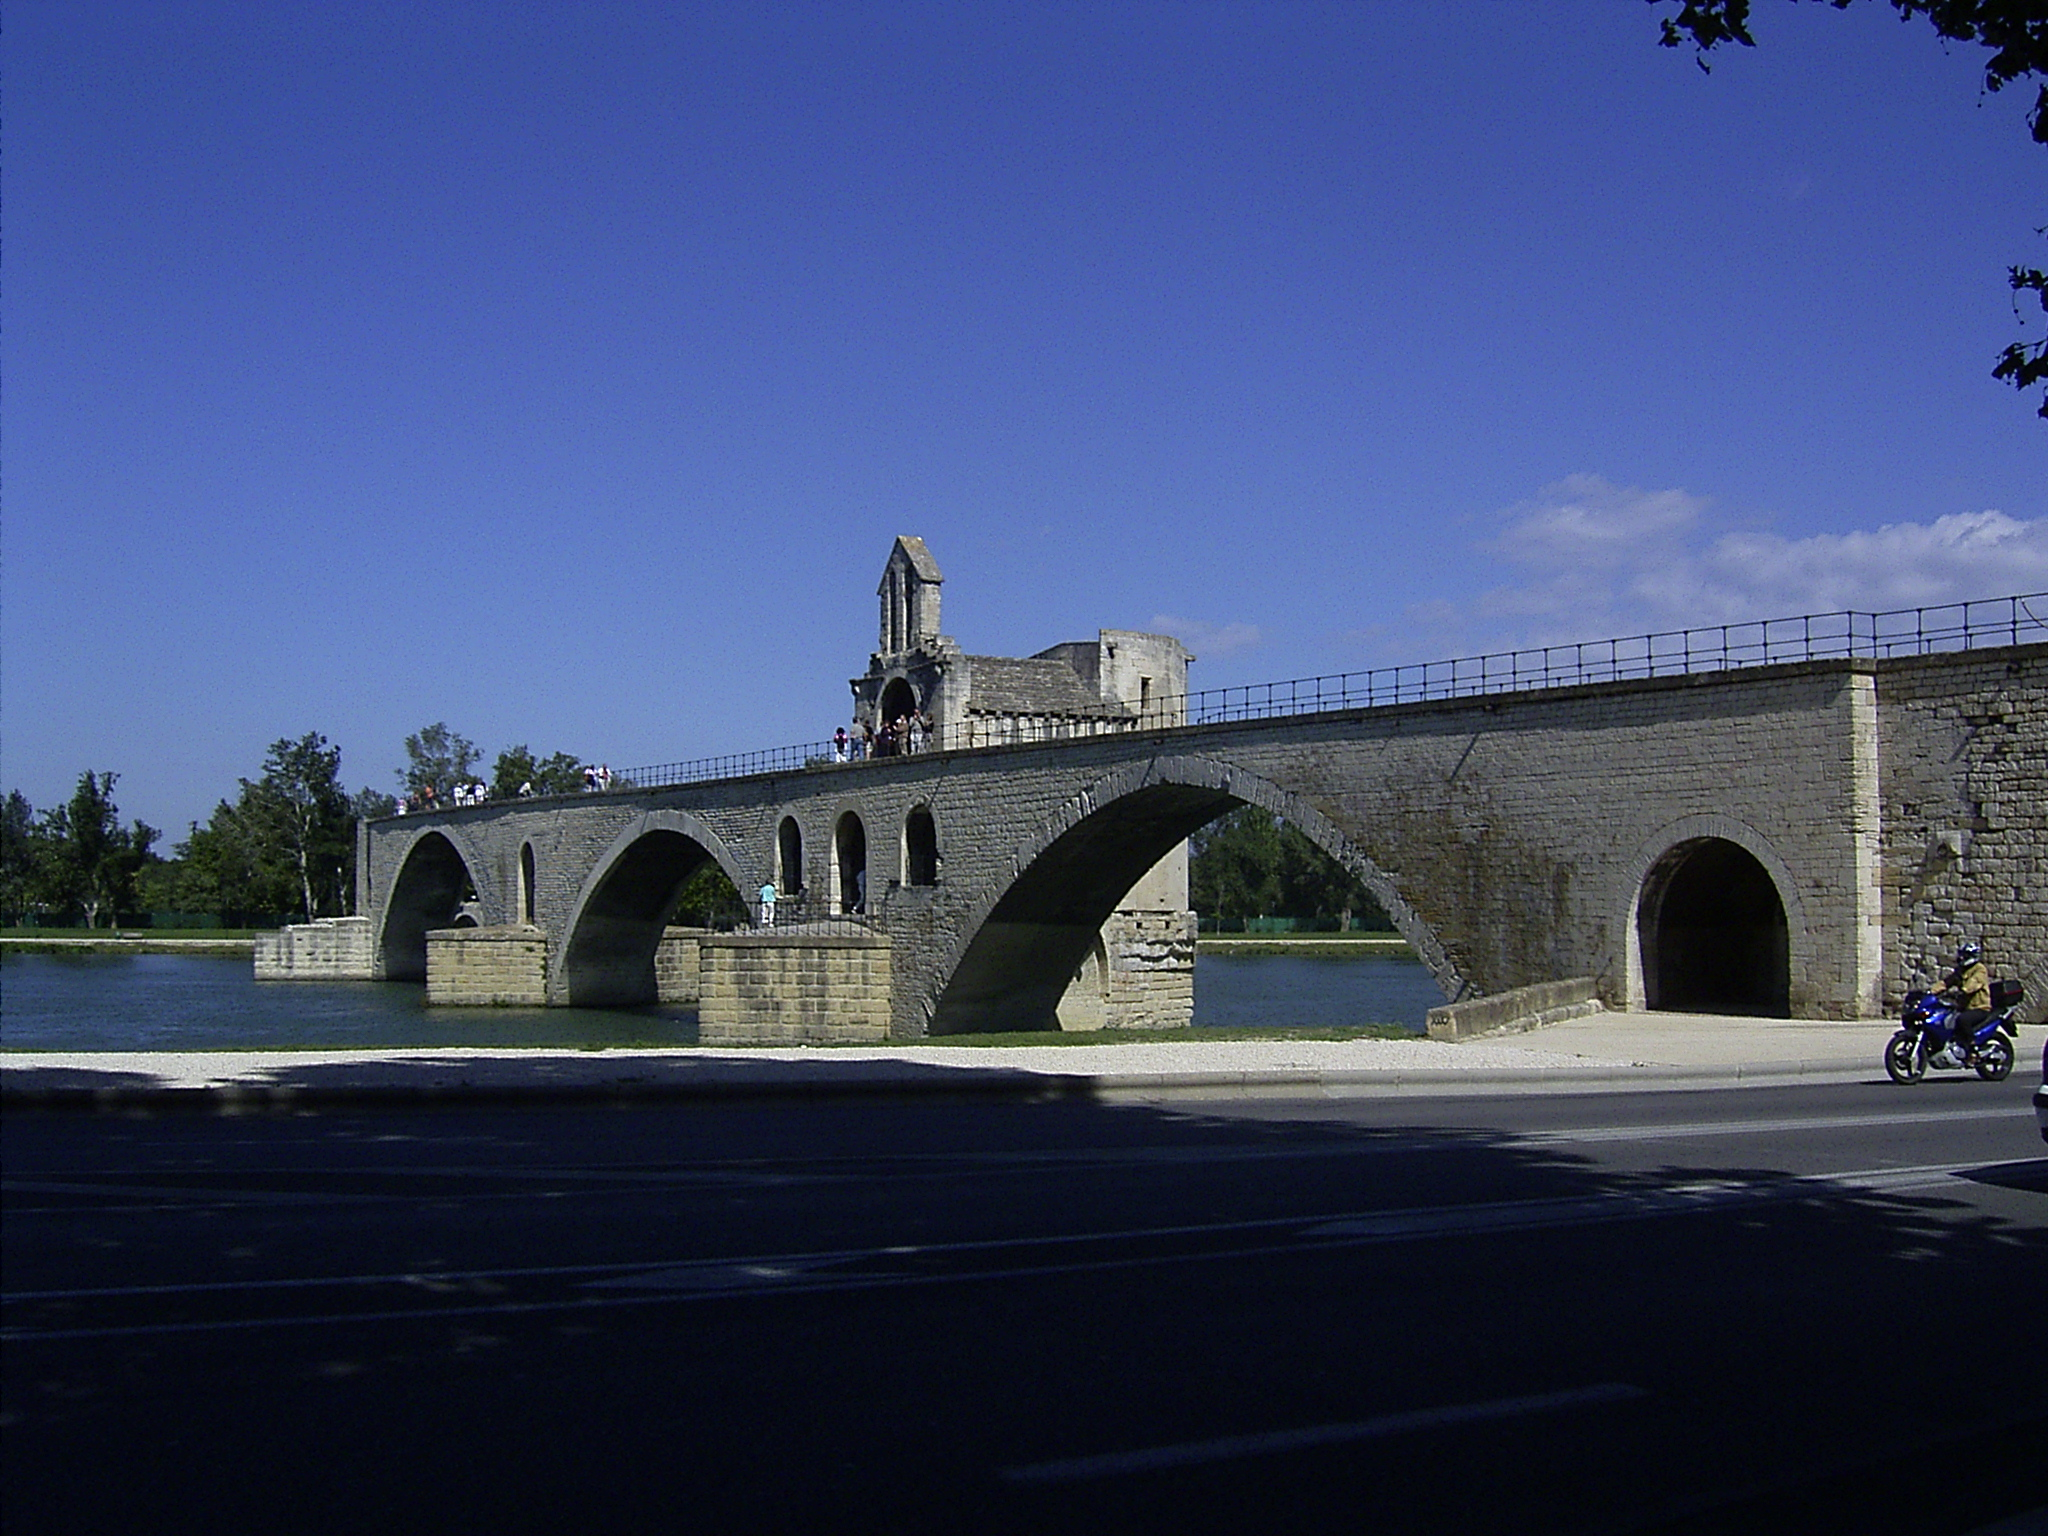 Pont d'Avignon (Monument) - similarity image